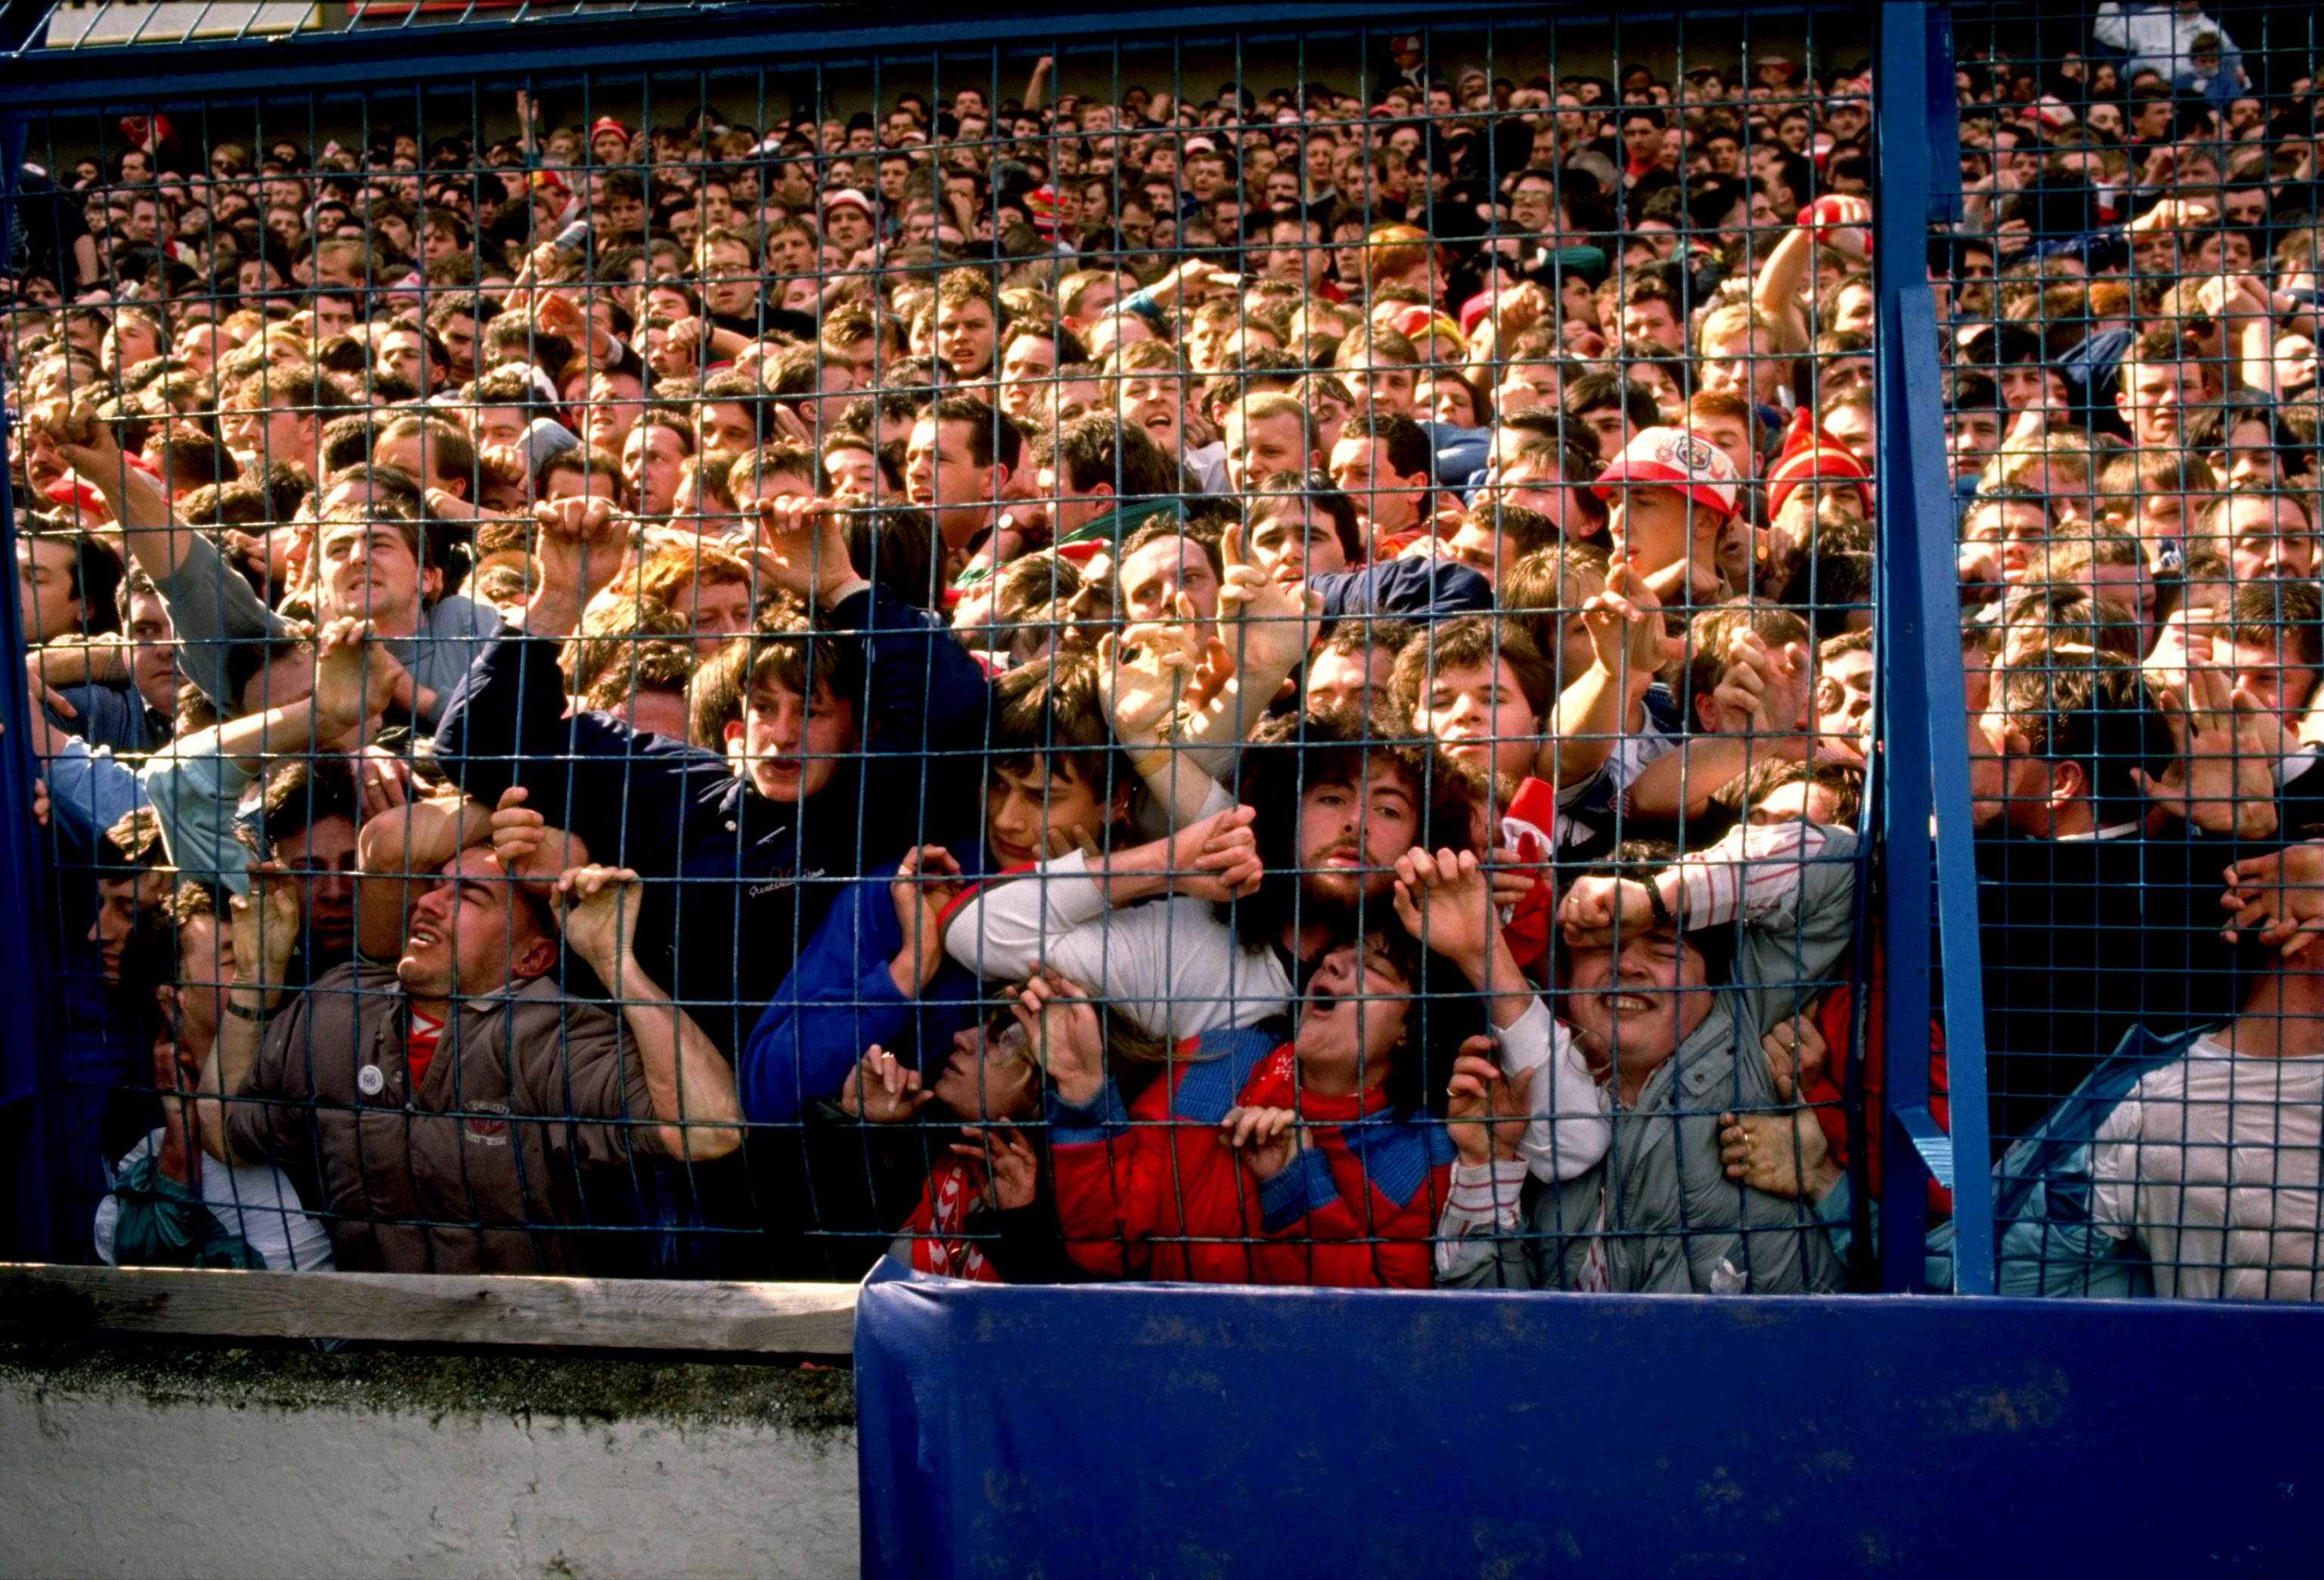 Hillsborough Disaster: Charges and History of Soccer Tragedy | Time